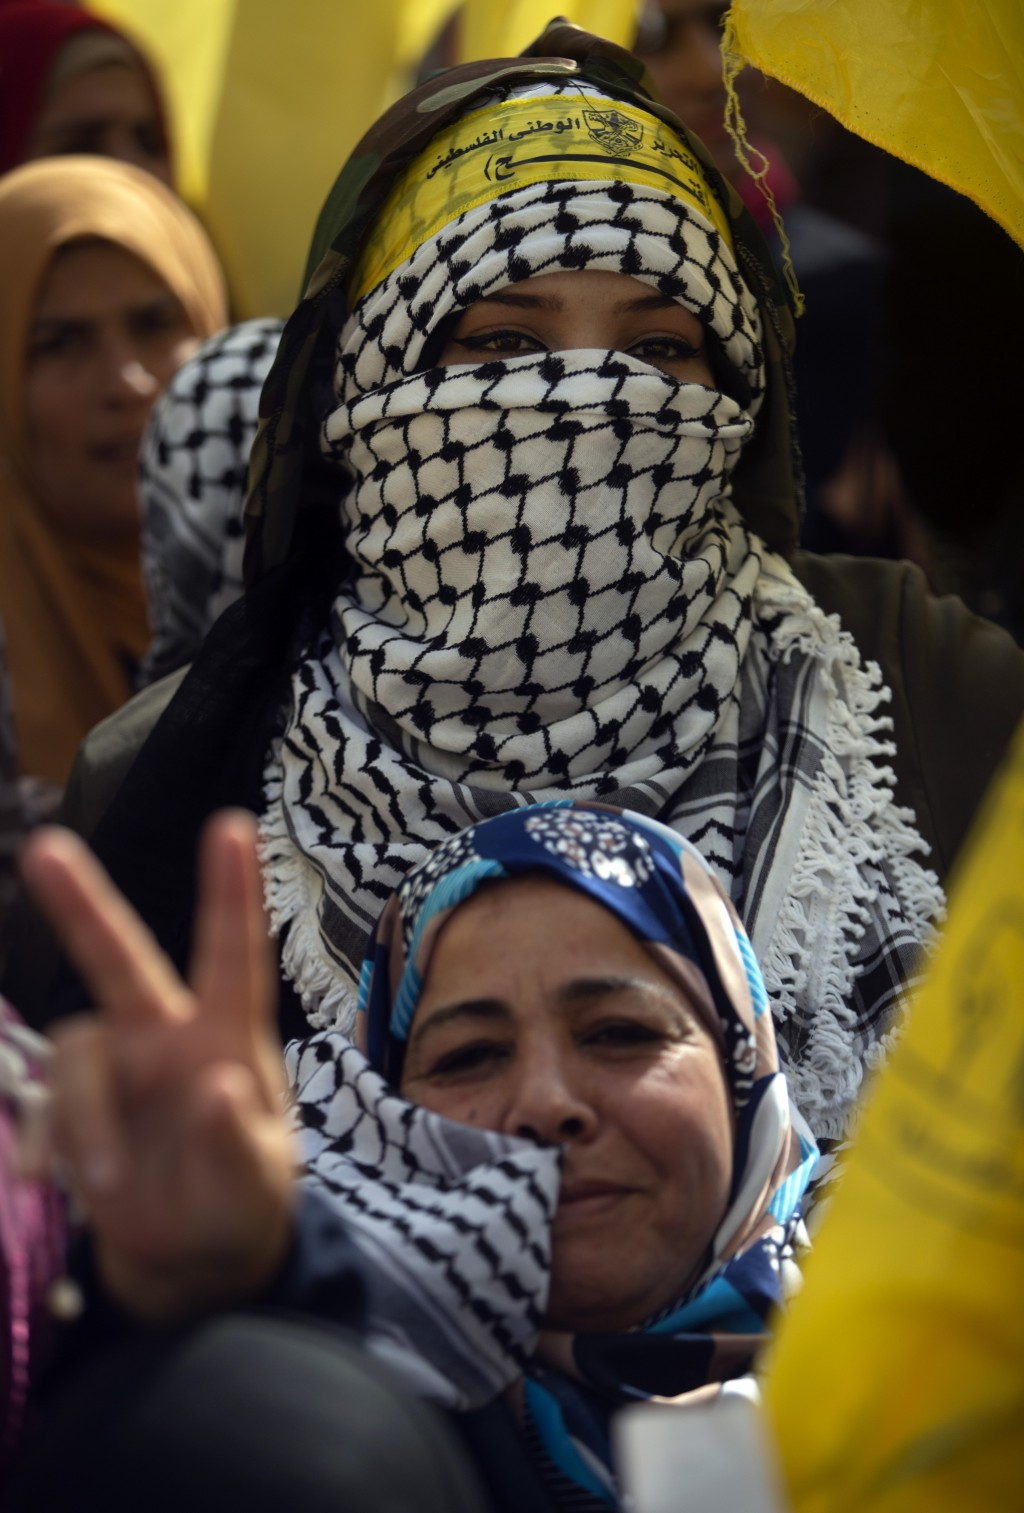 Palestinian women celebrate during a rally marking the 55th anniversary of the Fatah movement founding, in Gaza City, Wednesday, Jan. 1, 2020. Fatah i...